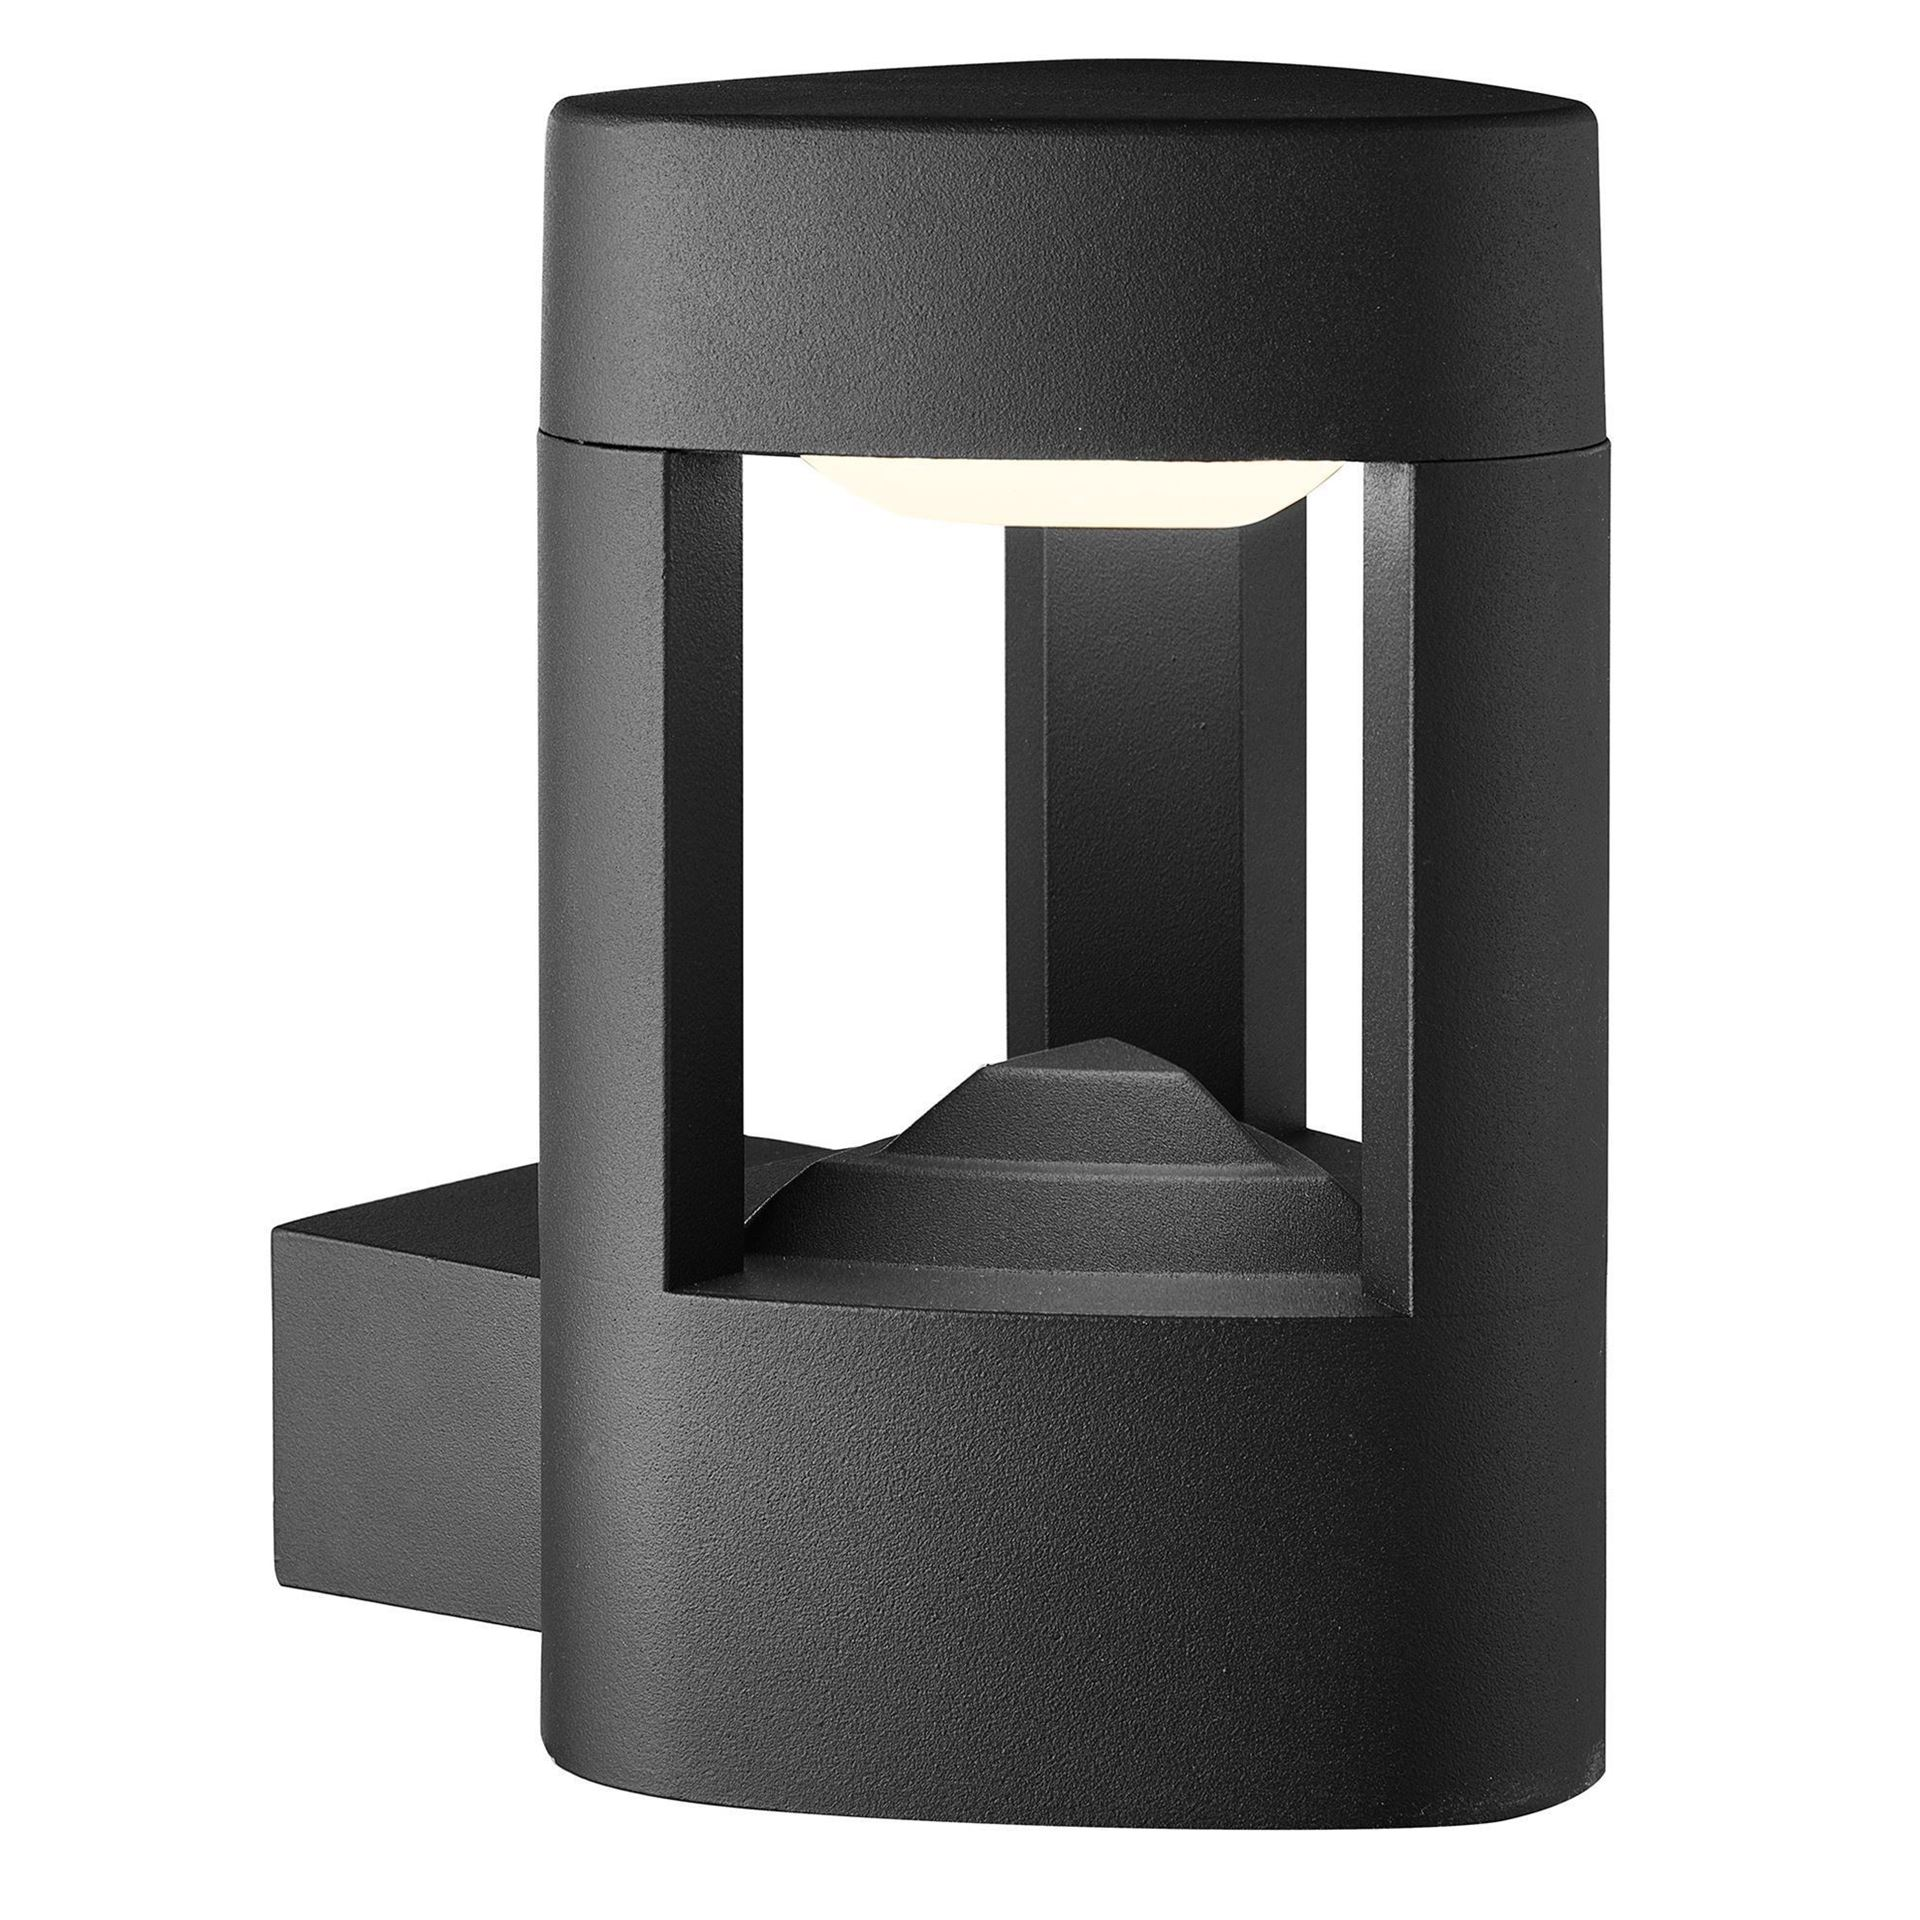 ALUMINIUM MICHIGAN IP44 GREY LED OUTDOOR WALL LIGHT, CLEAR POLYCARBONATE SHADE 2005GY